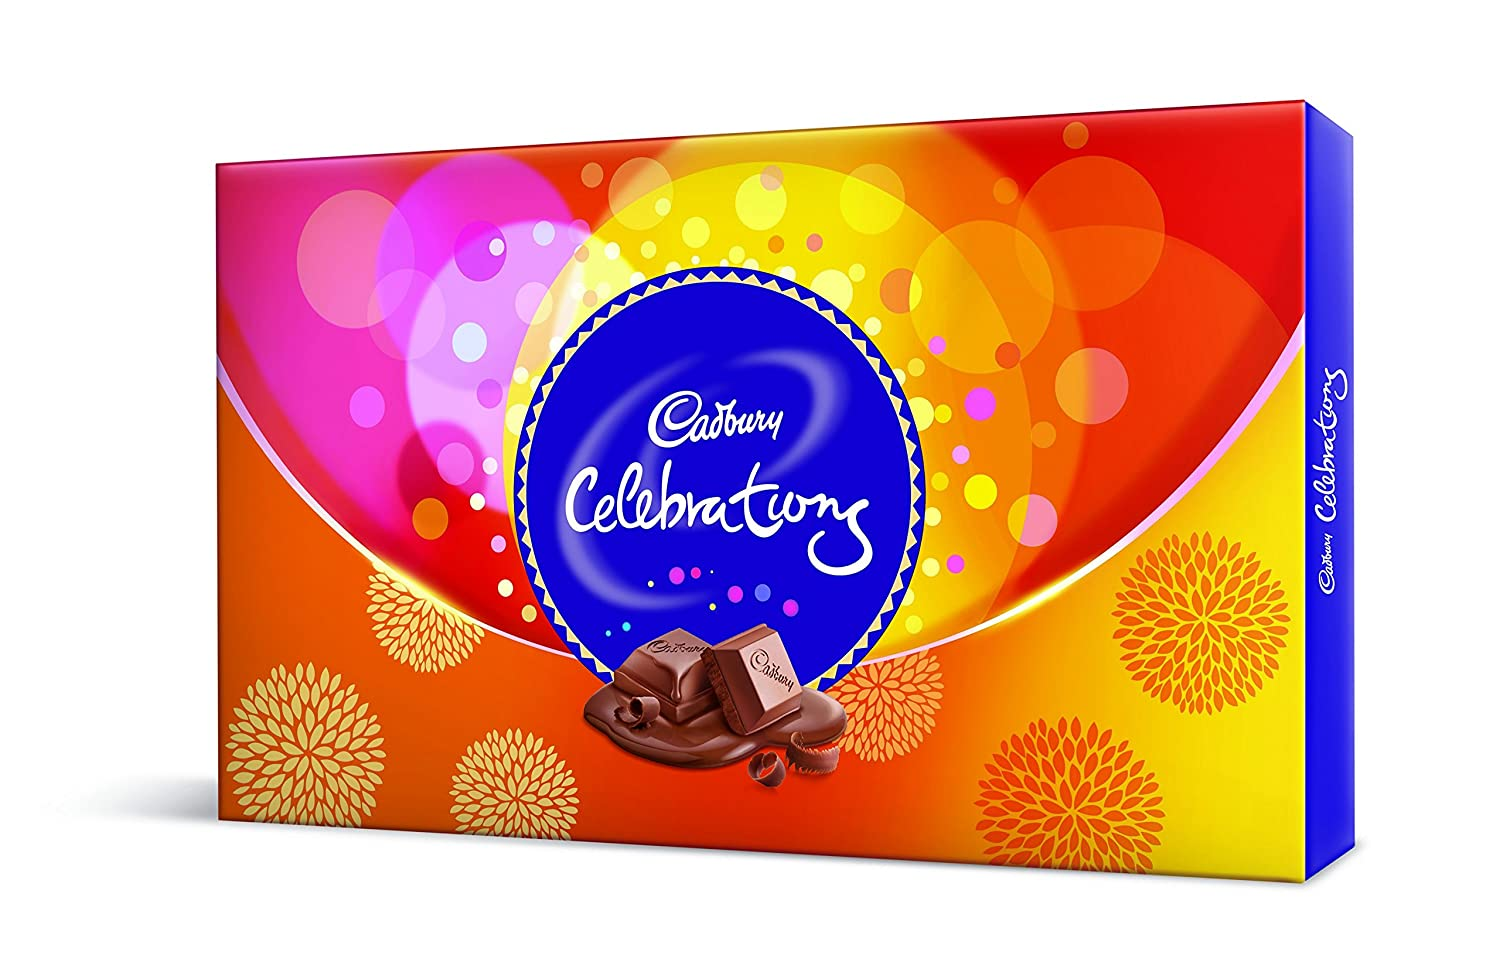 Latest Diwali Offers On: Cadbury Celebrations